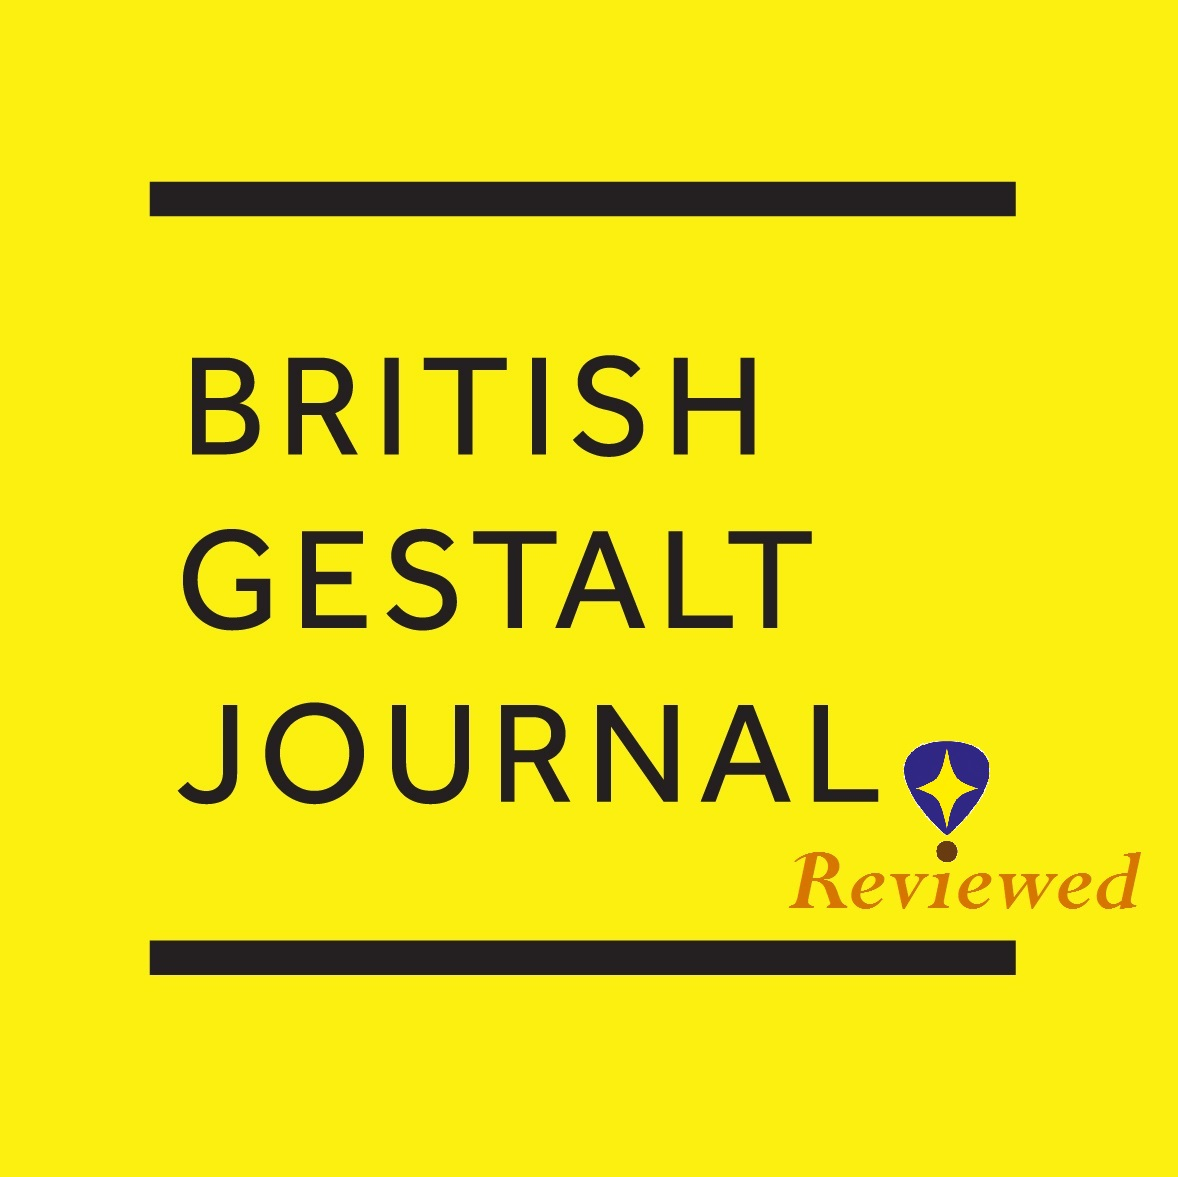 british gestalt journal reviewed